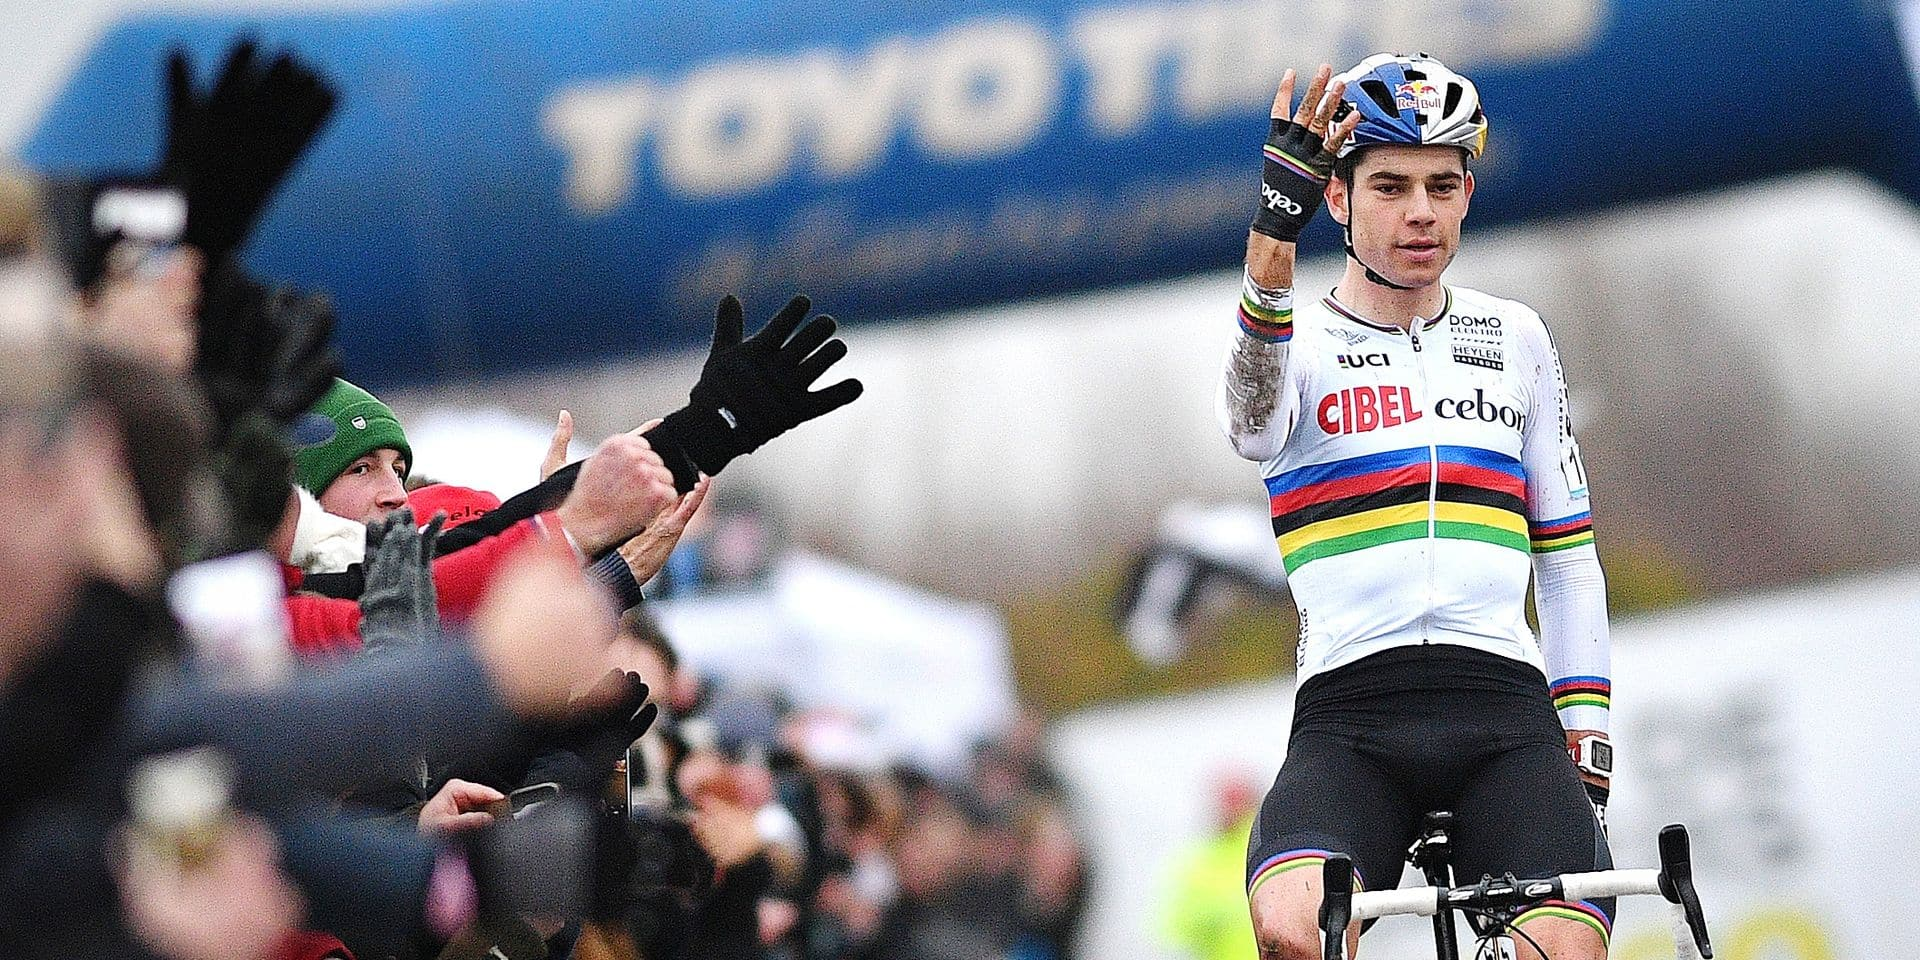 Belgian Wout Van Aert celebrates as he crosses the finish line to win the men's race of the 'Ereprijs Paul Herygers' cyclocross cycling event in Bredene, race 6 out of 8 in the 'Brico Cross' trophy, Saturday 29 December 2018. BELGA PHOTO DAVID STOCKMAN